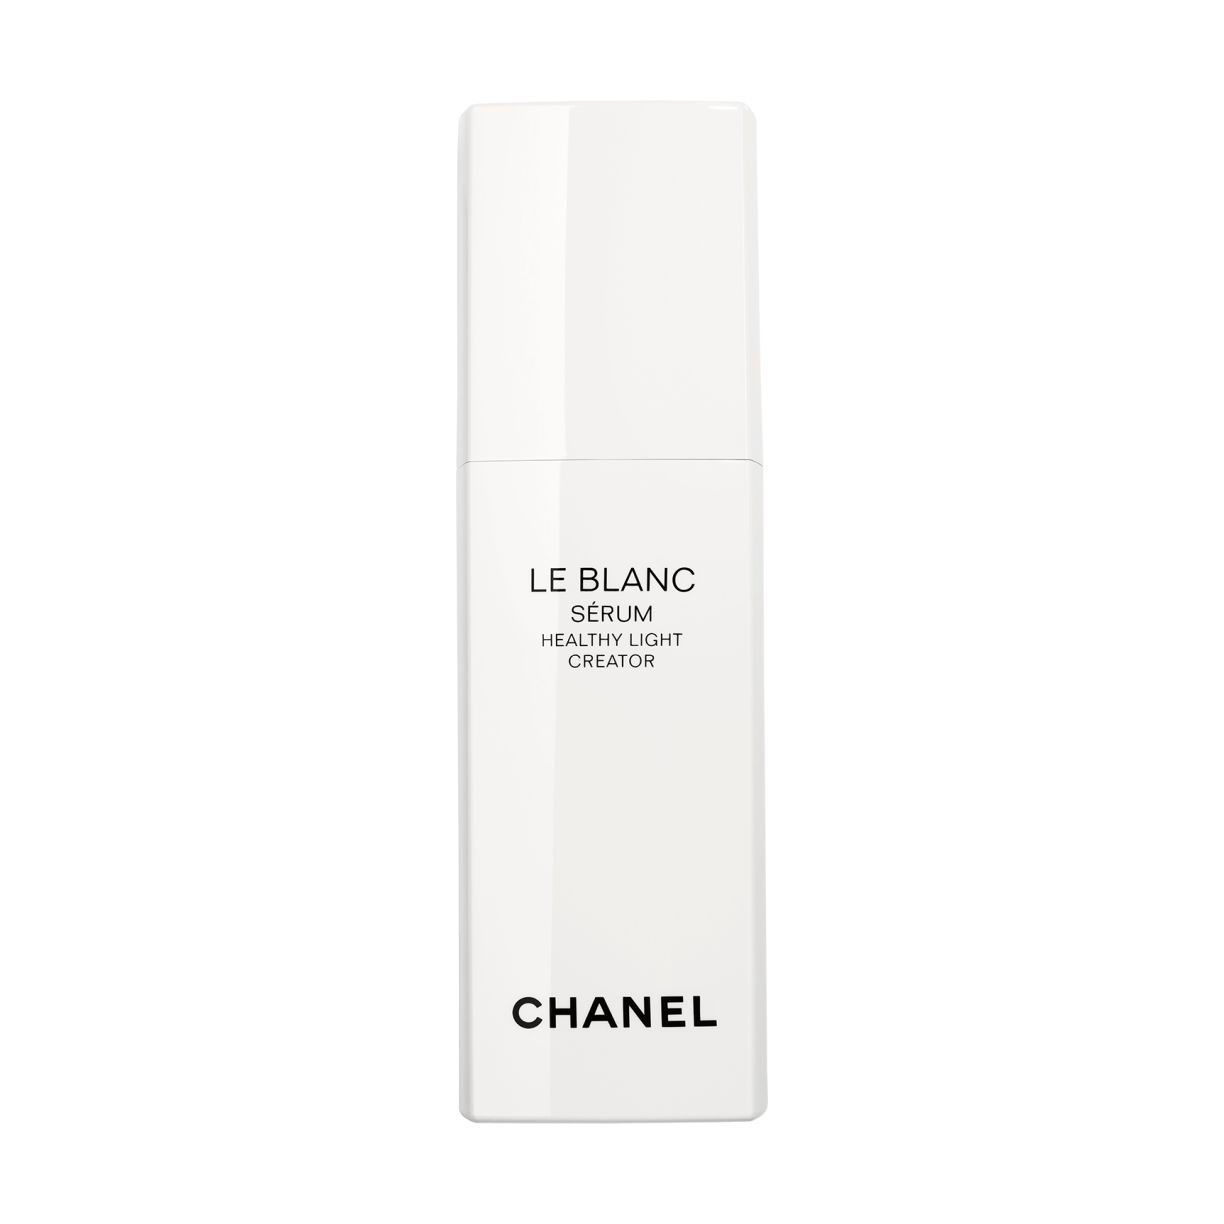 LE BLANC SÉRUM HEALTHY LIGHT CREATOR REVITALIZING - BRIGHTENING - NOURISHING PUMP BOTTLE 30ML